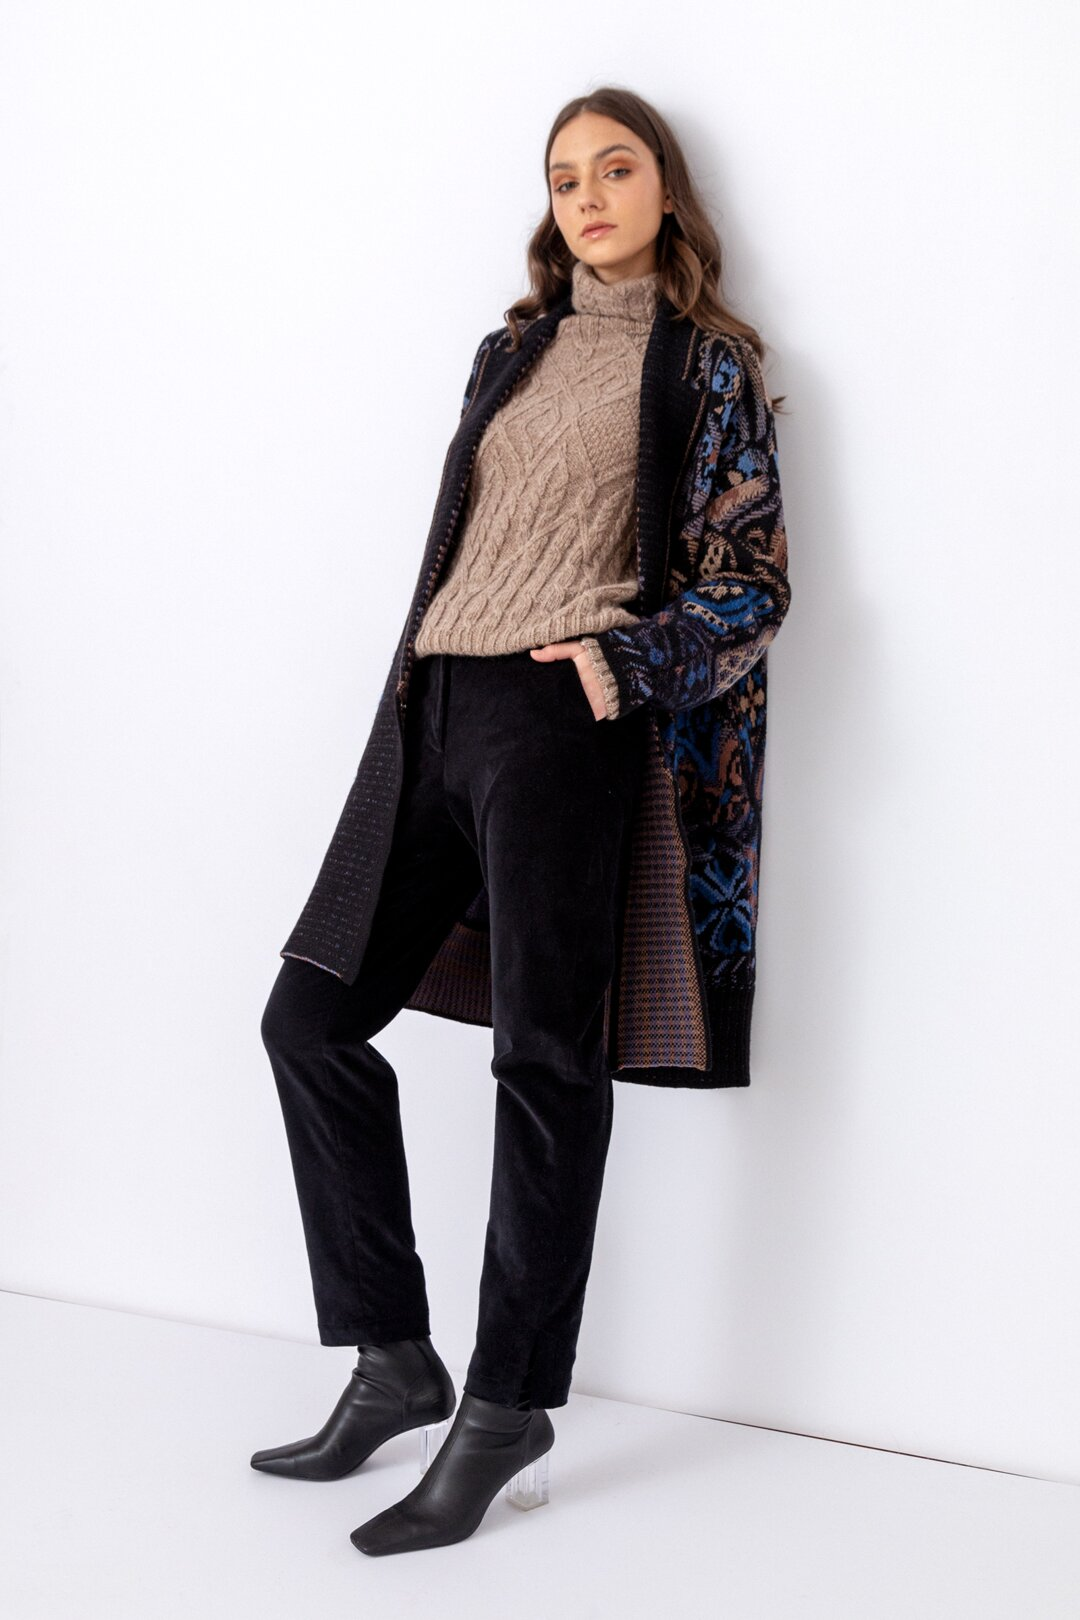 outfit-7c8a1260